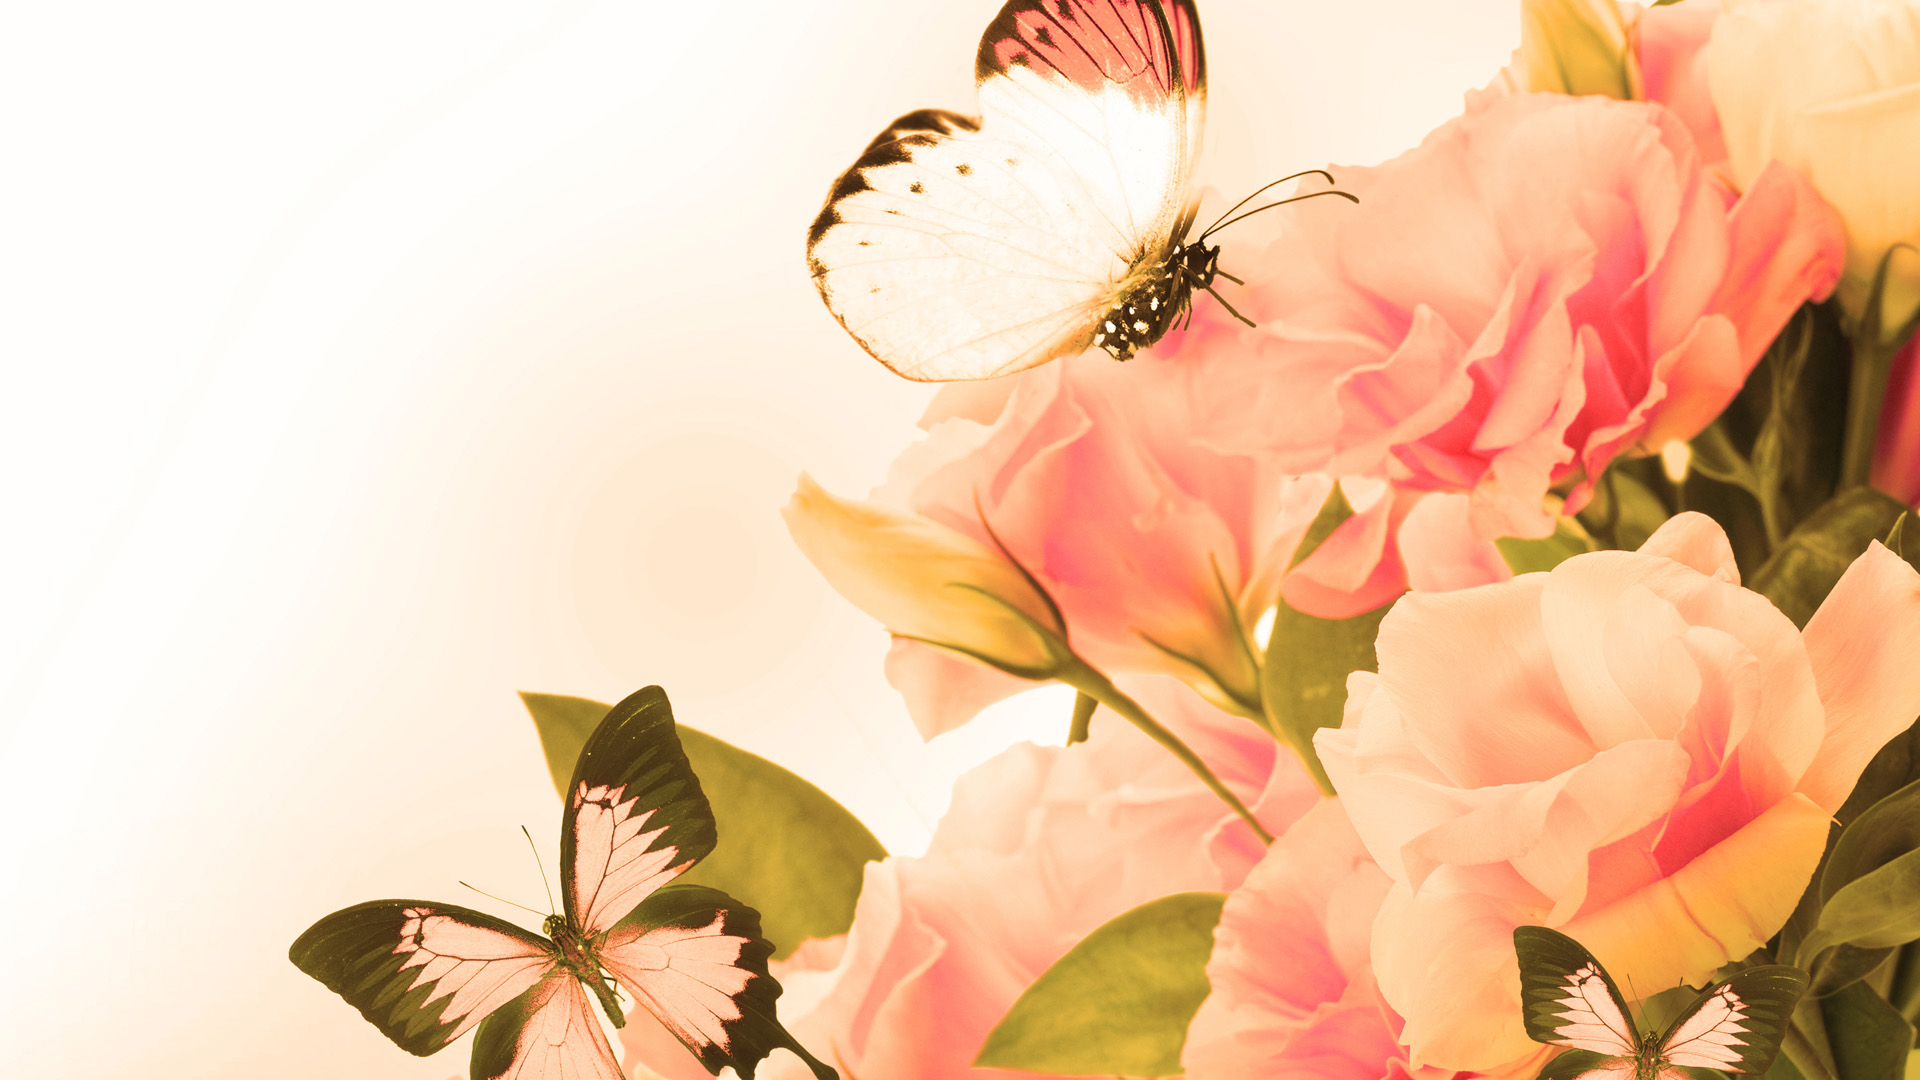 Vintage Art Wallpaper Vintage Rose And Butterfly Art 1920x1080